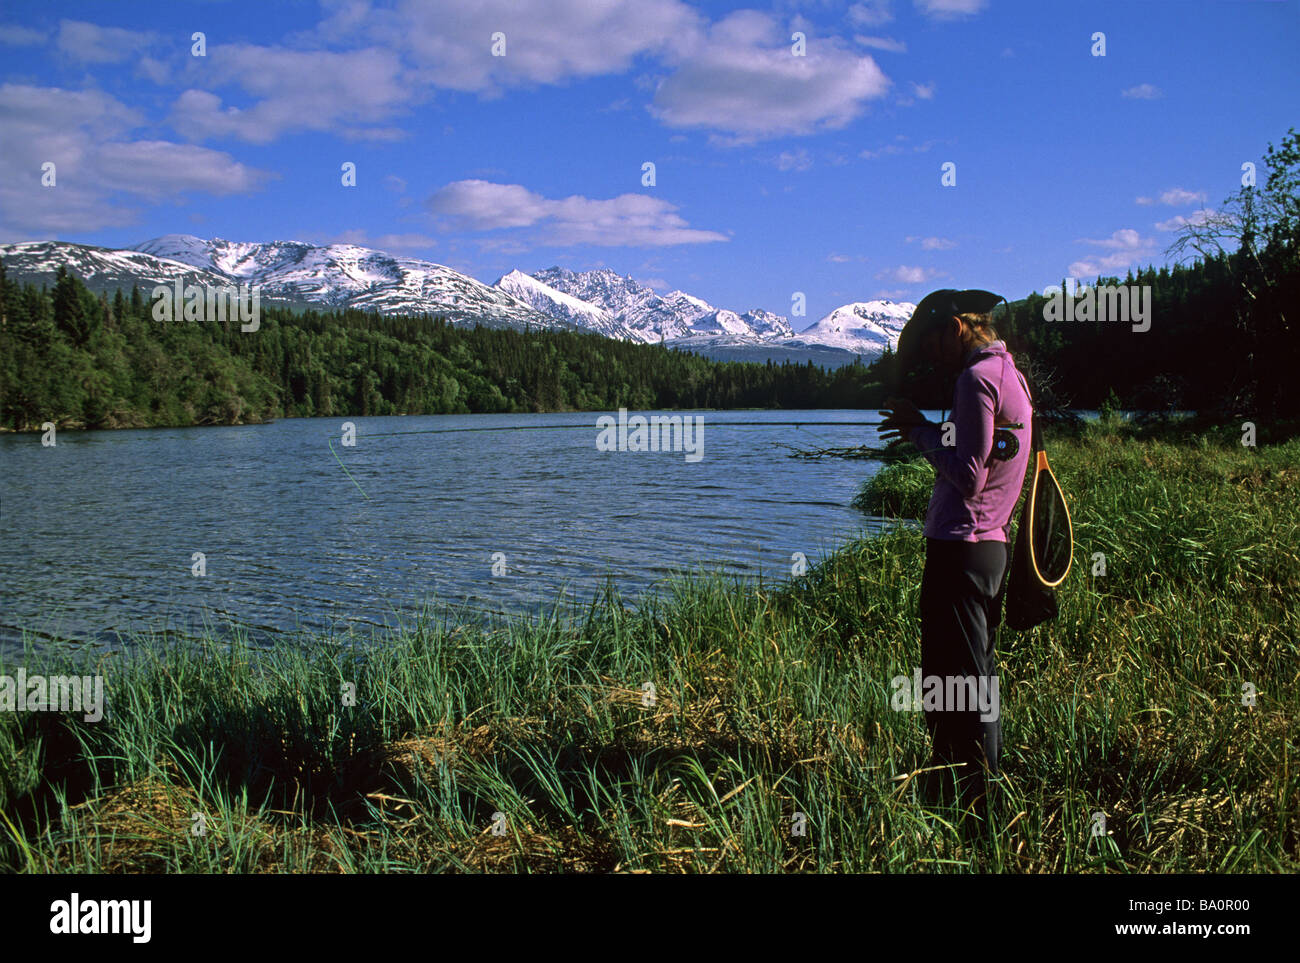 a woman fly fisherman ties on a fly for grayling in a alpine lake in alaska Stock Photo